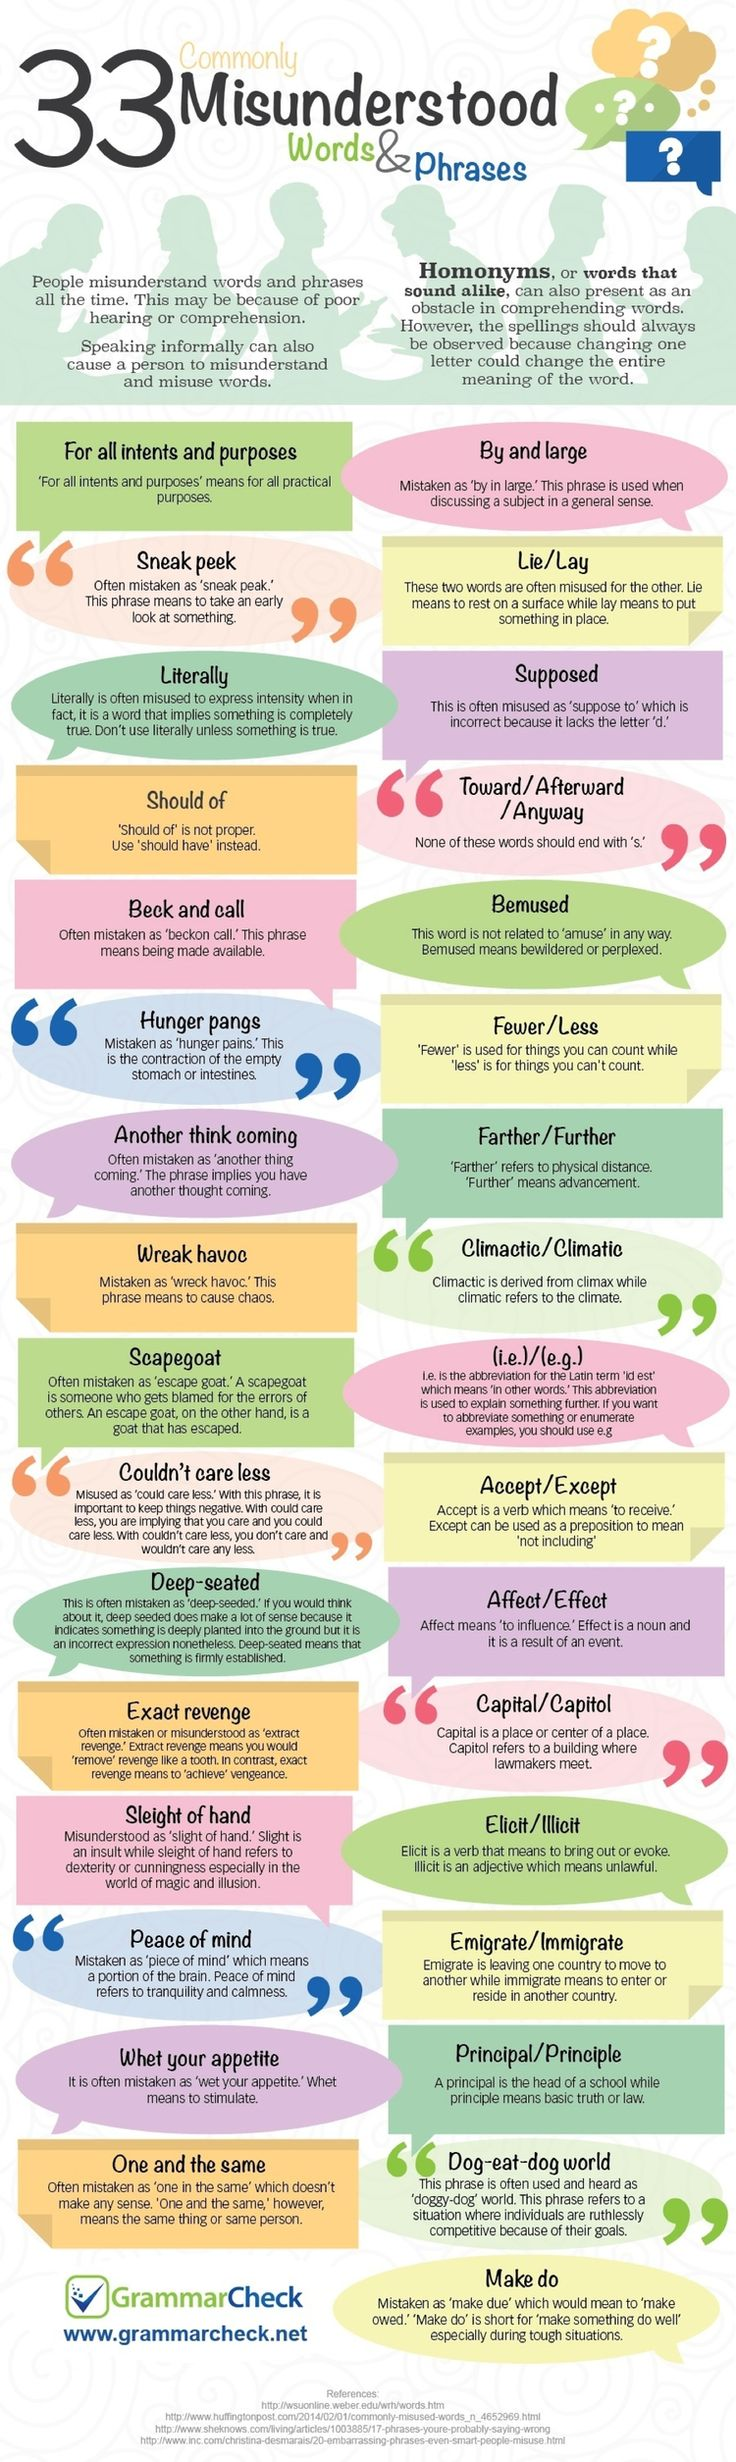 33 Commonly Misunderstood Words & Phrases Infographic by Cheatography http://www.cheatography.com/cheatography/cheat-sheets/33-commonly-misunderstood-words-and-phrases/ #cheatsheet #english #grammar More